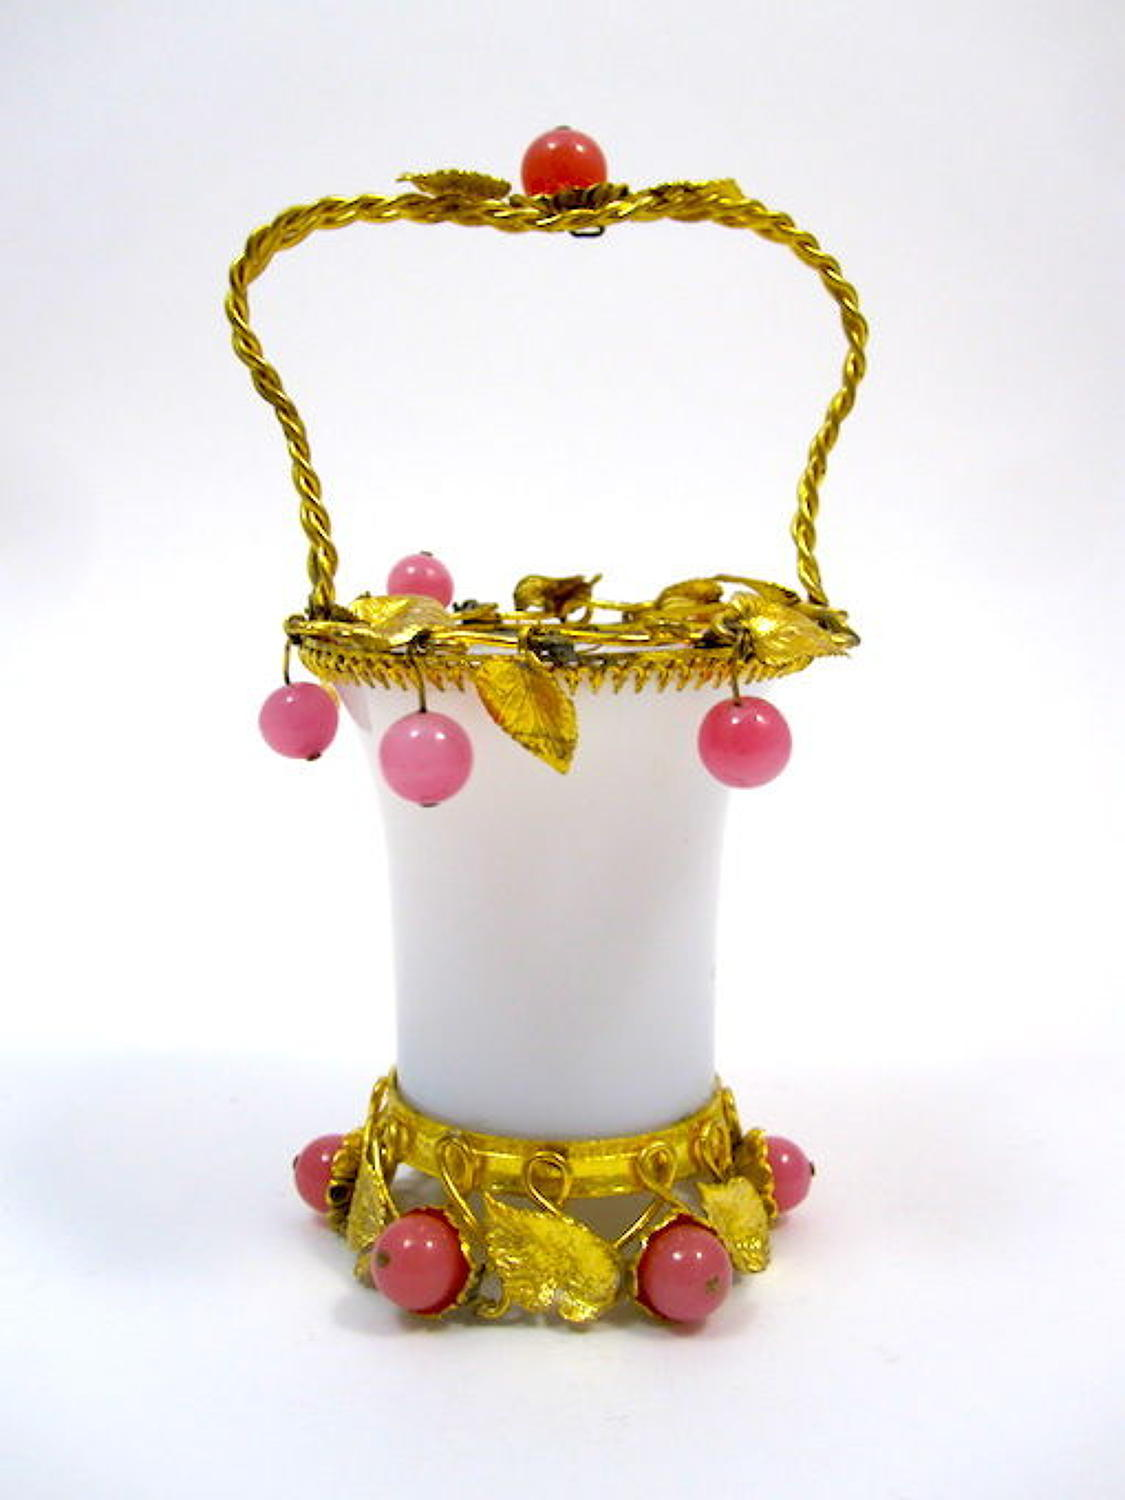 Antique White Opaline Glass Basket with Pink Opaline Baubles